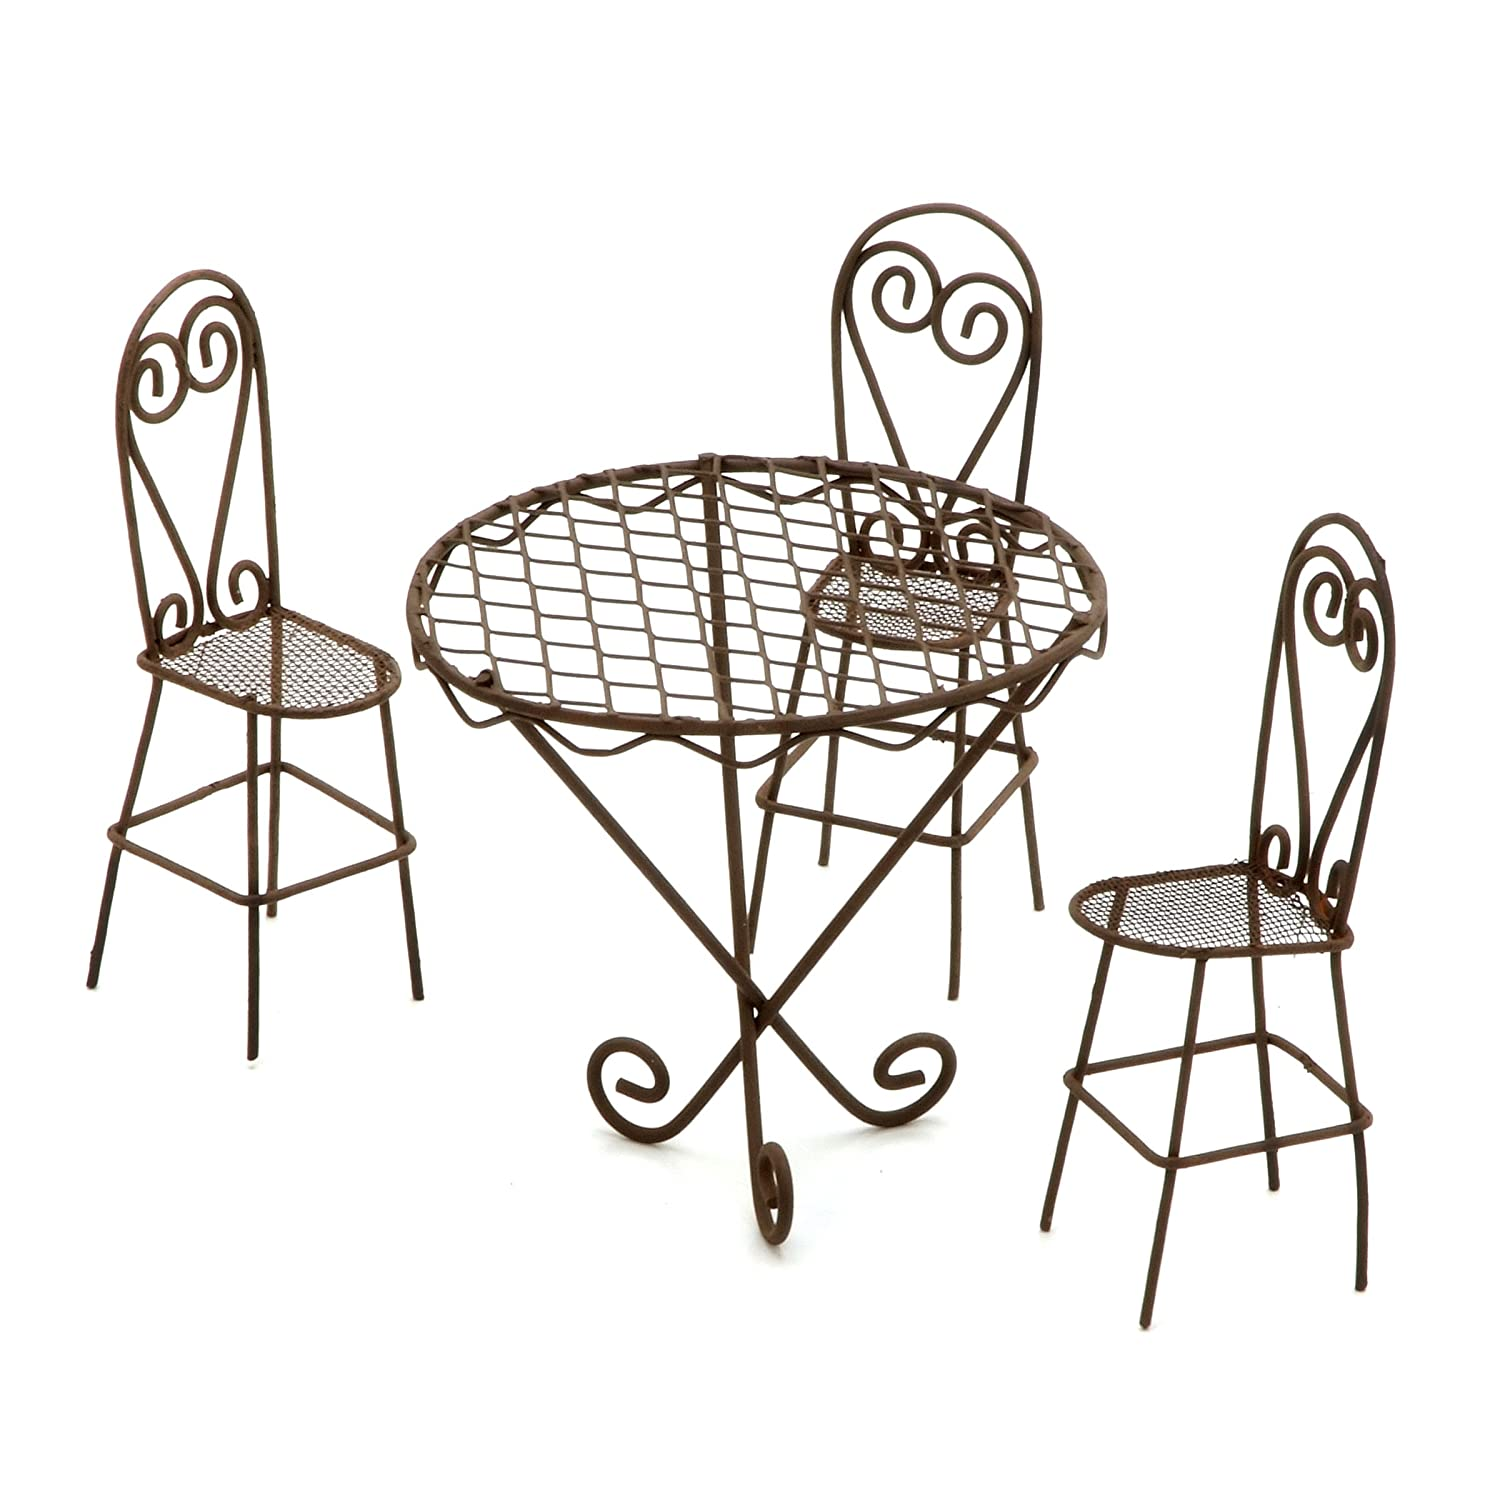 Darice Timeless Miniatures, Wire Garden Table and Chairs Set